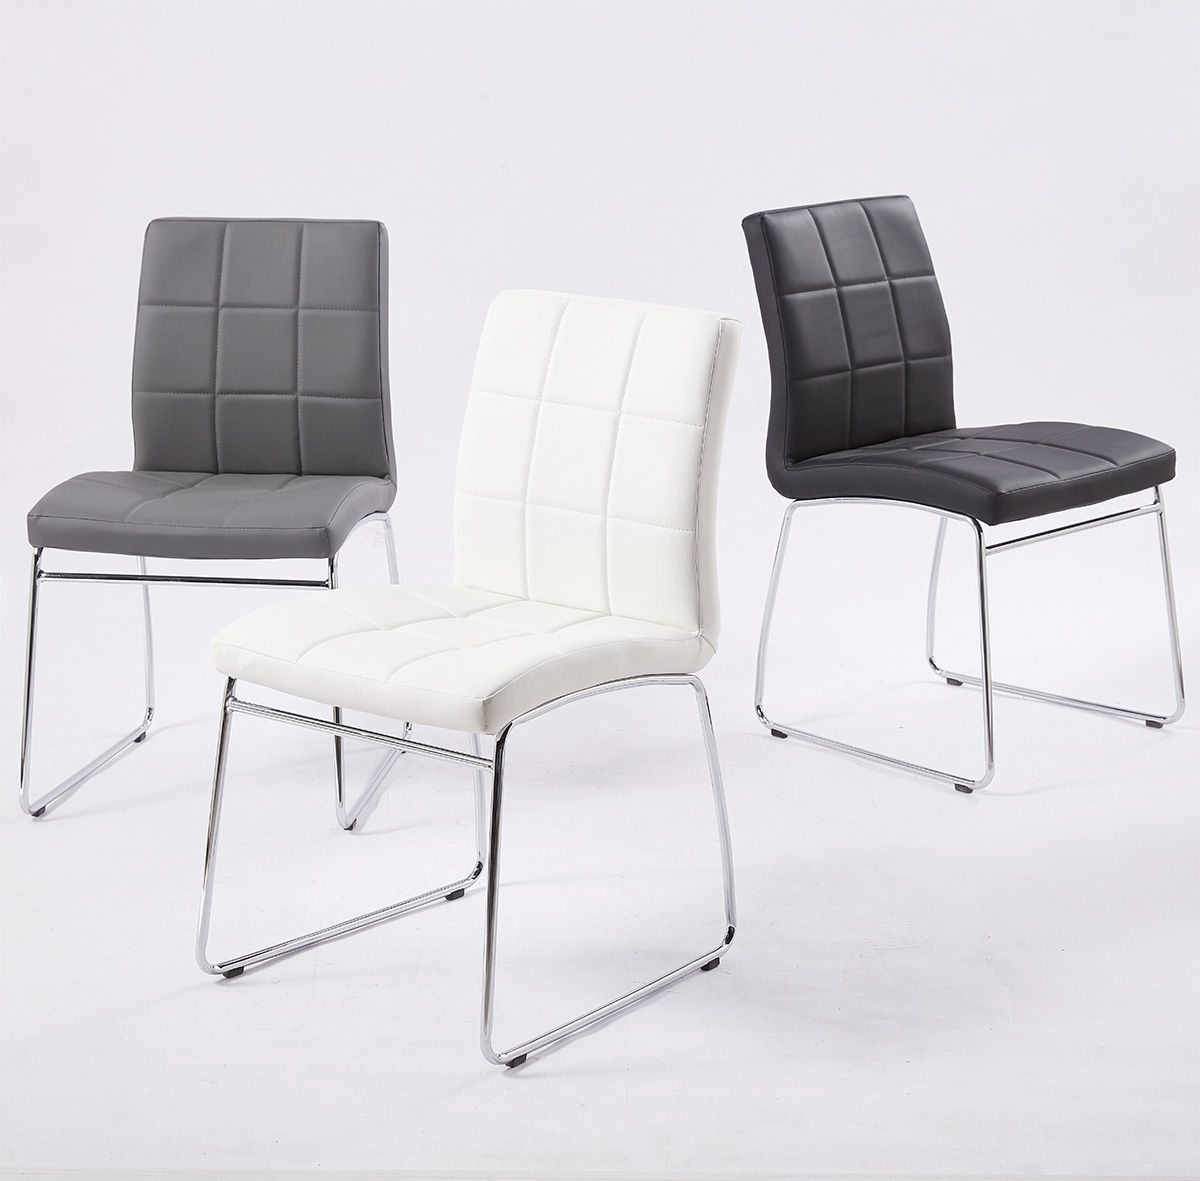 Details About 2 4 6 Dining Chairs Sled Chrome Legs Leather